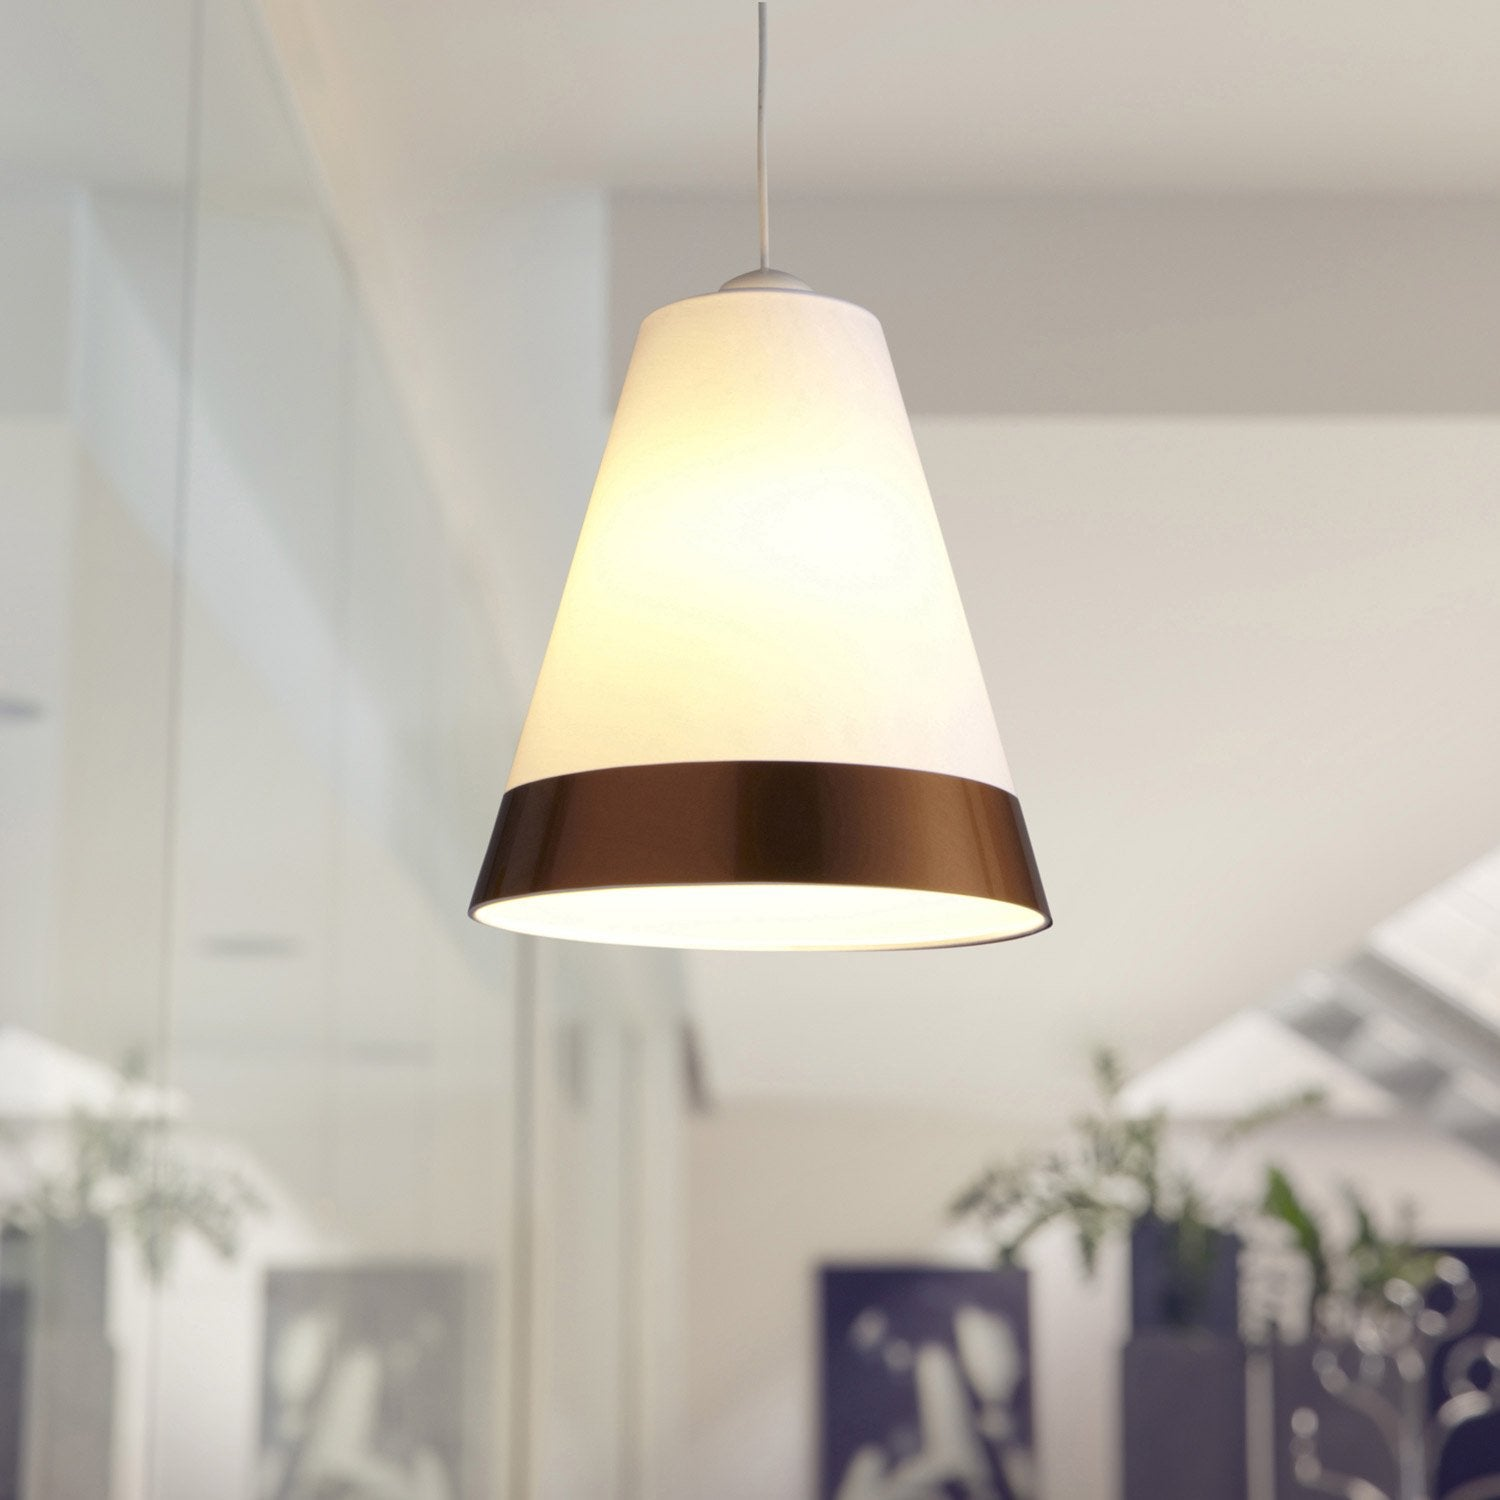 suspension copper lilly metropolight blanc 60 watts. Black Bedroom Furniture Sets. Home Design Ideas